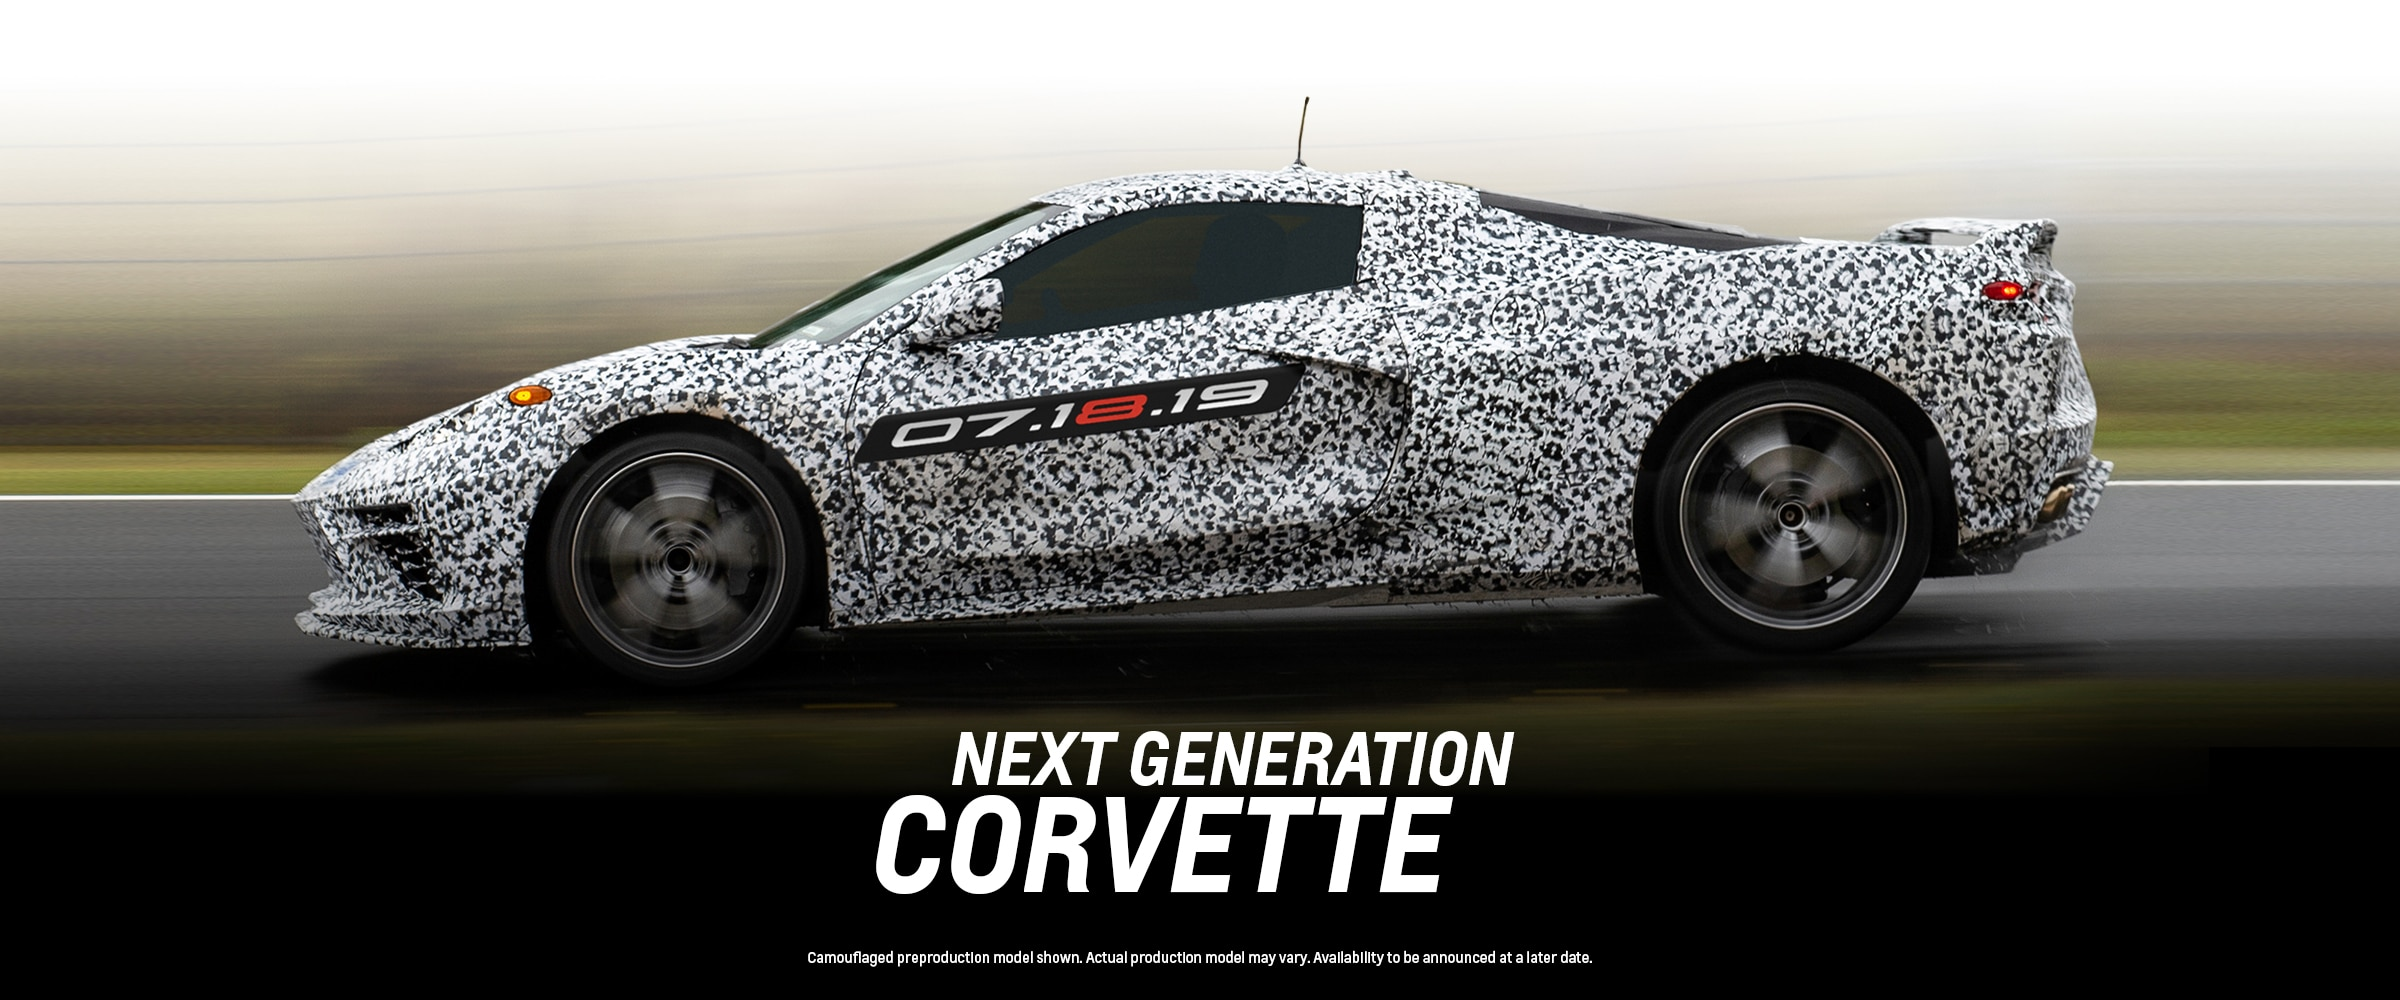 Vehicles, Chevy, Chevrolet, Chevrolet Performance, Corvette, Next Gen Corvette, Next Generation Corvette, C8, C8 Corvette, Eighth-Generation Corvette